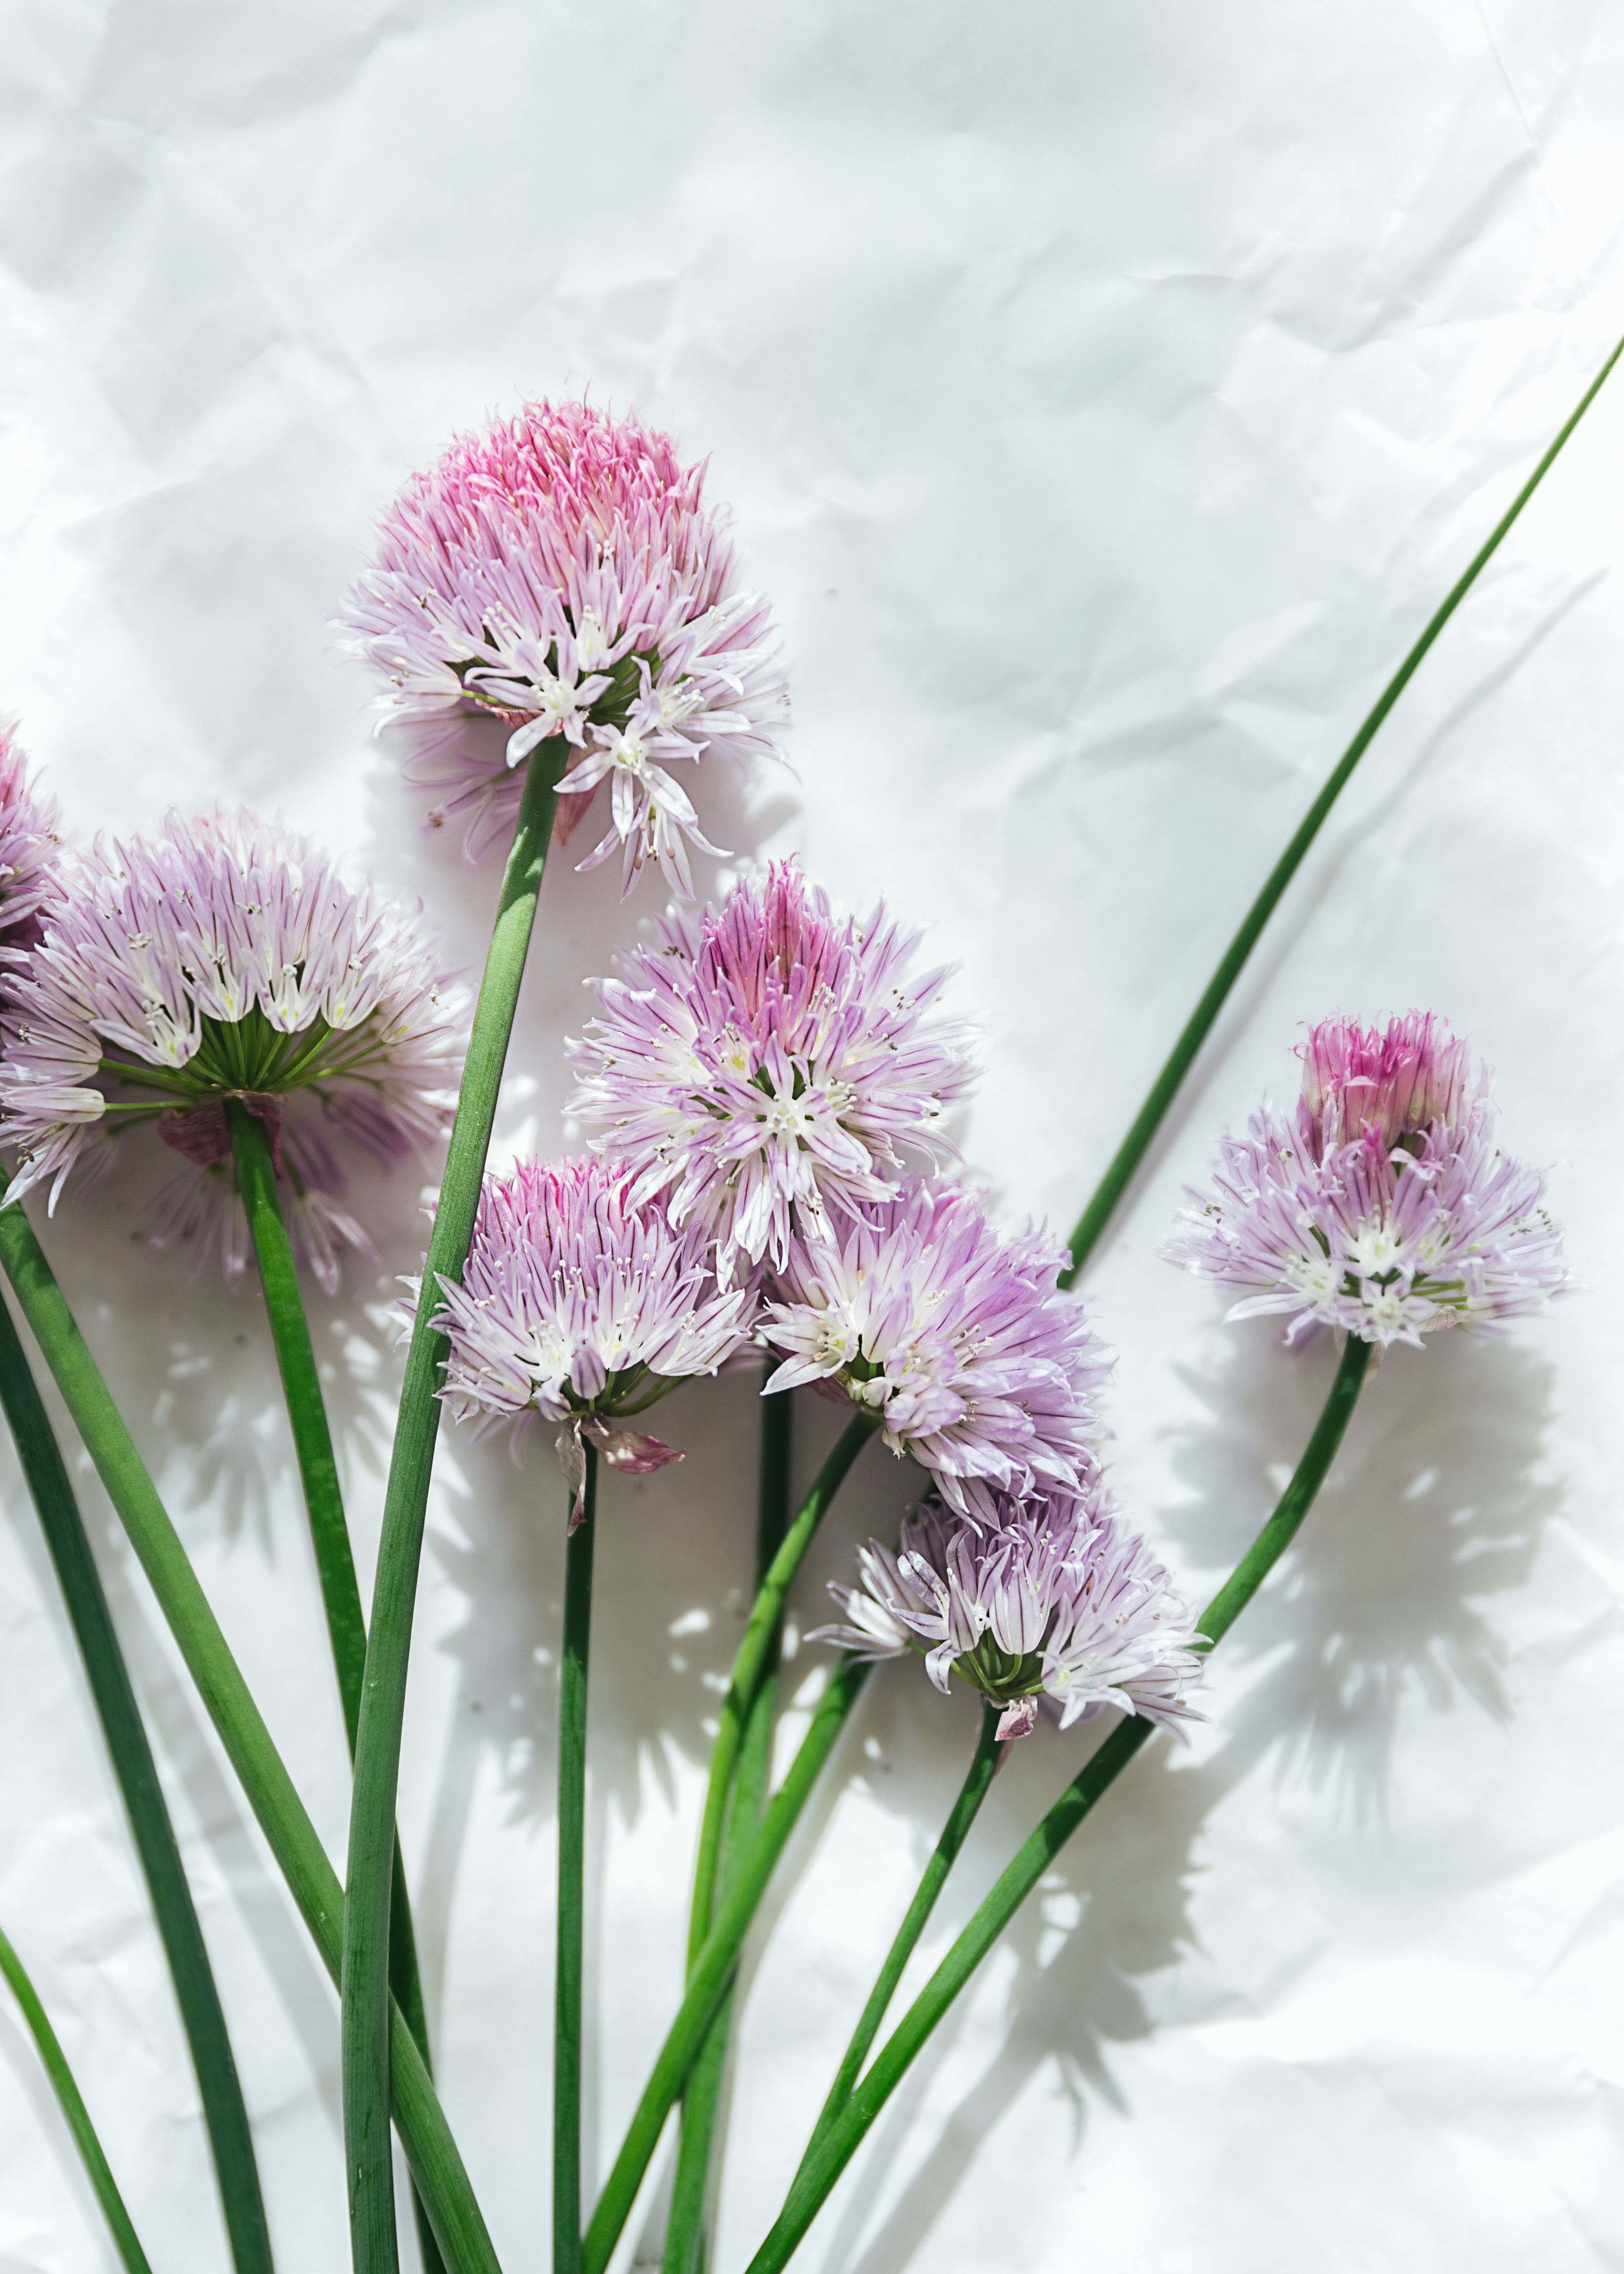 chive flowers from papa's yard